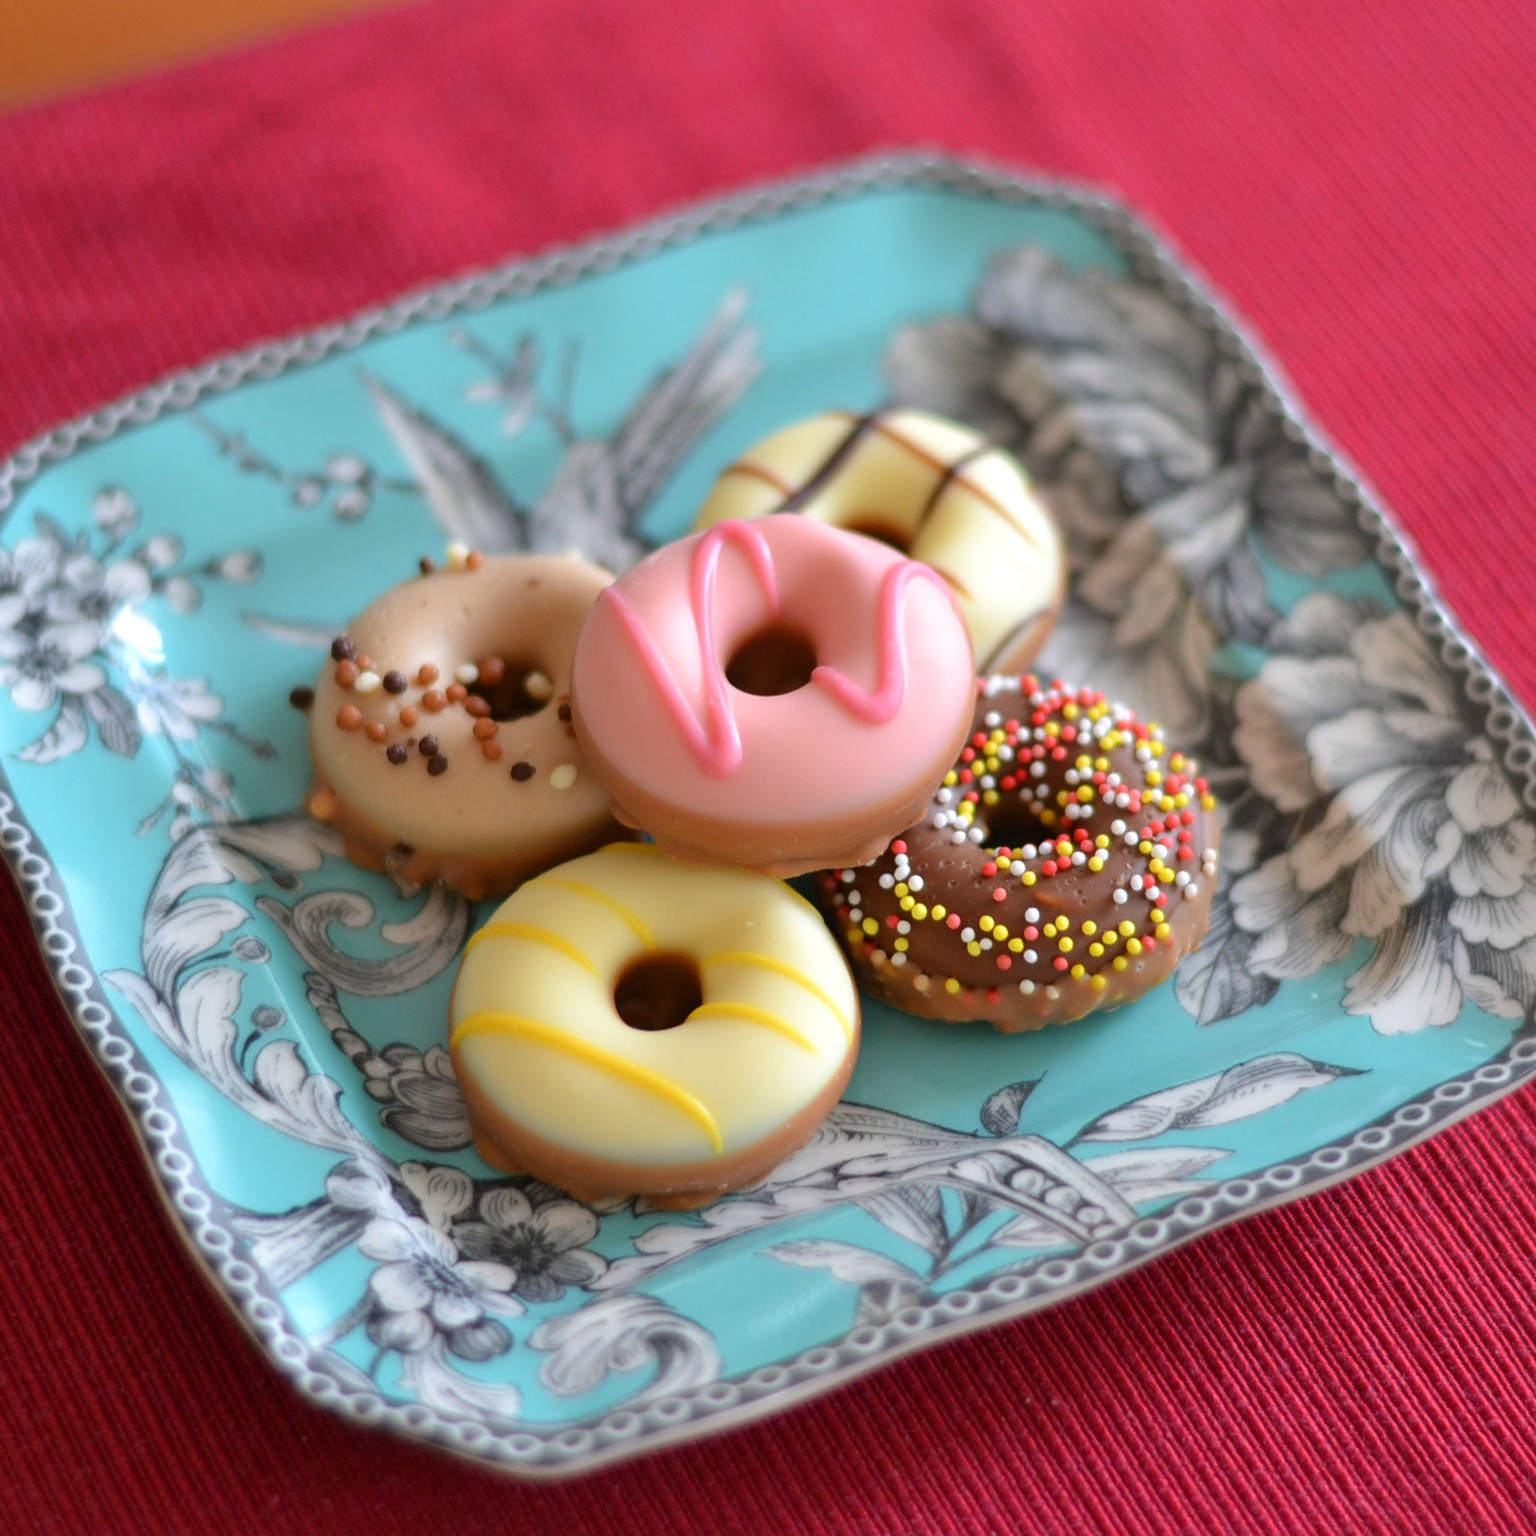 doughnut-shaped chocolates